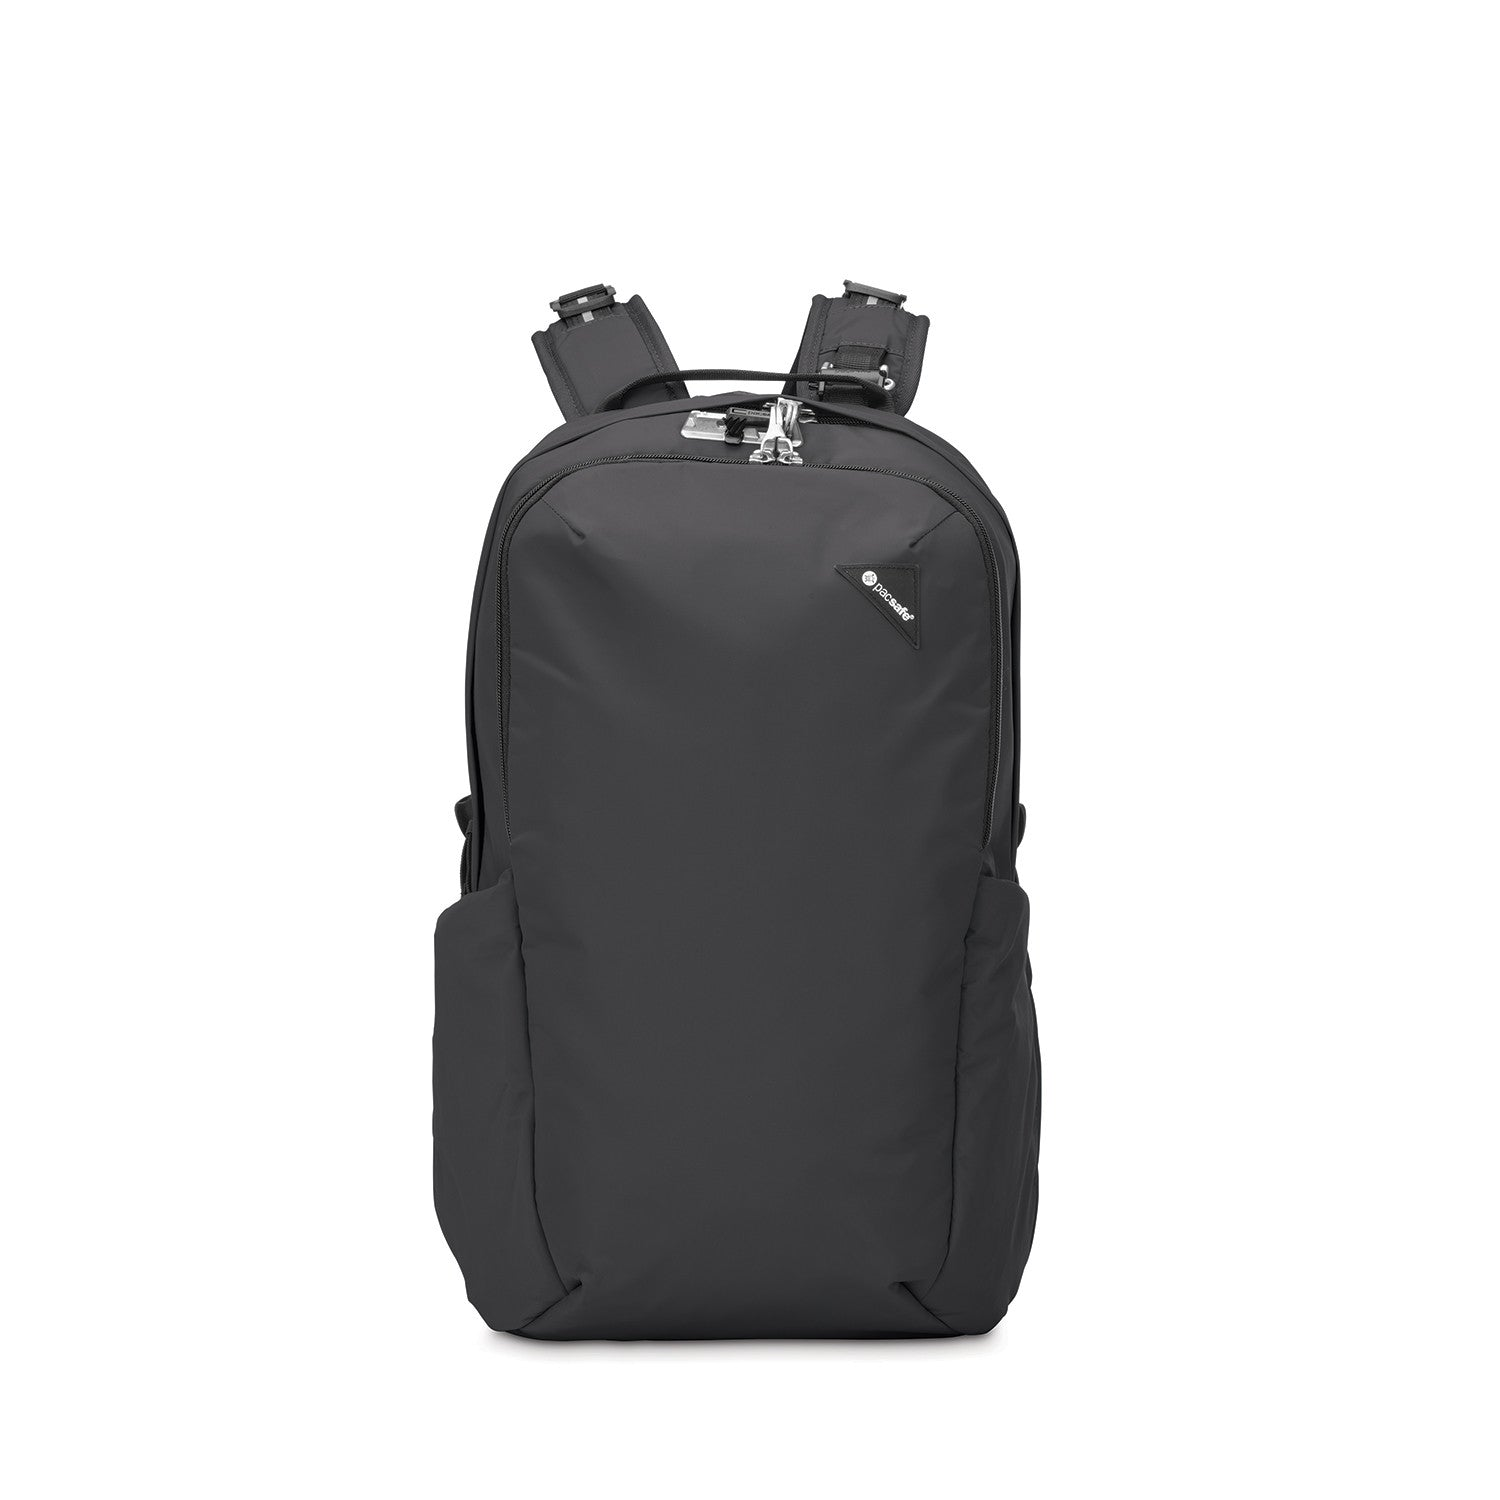 Pacsafe-Vibe 25 Anti-Theft 25L Backpack-RFID Bag-Black-Gearaholic.com.sg